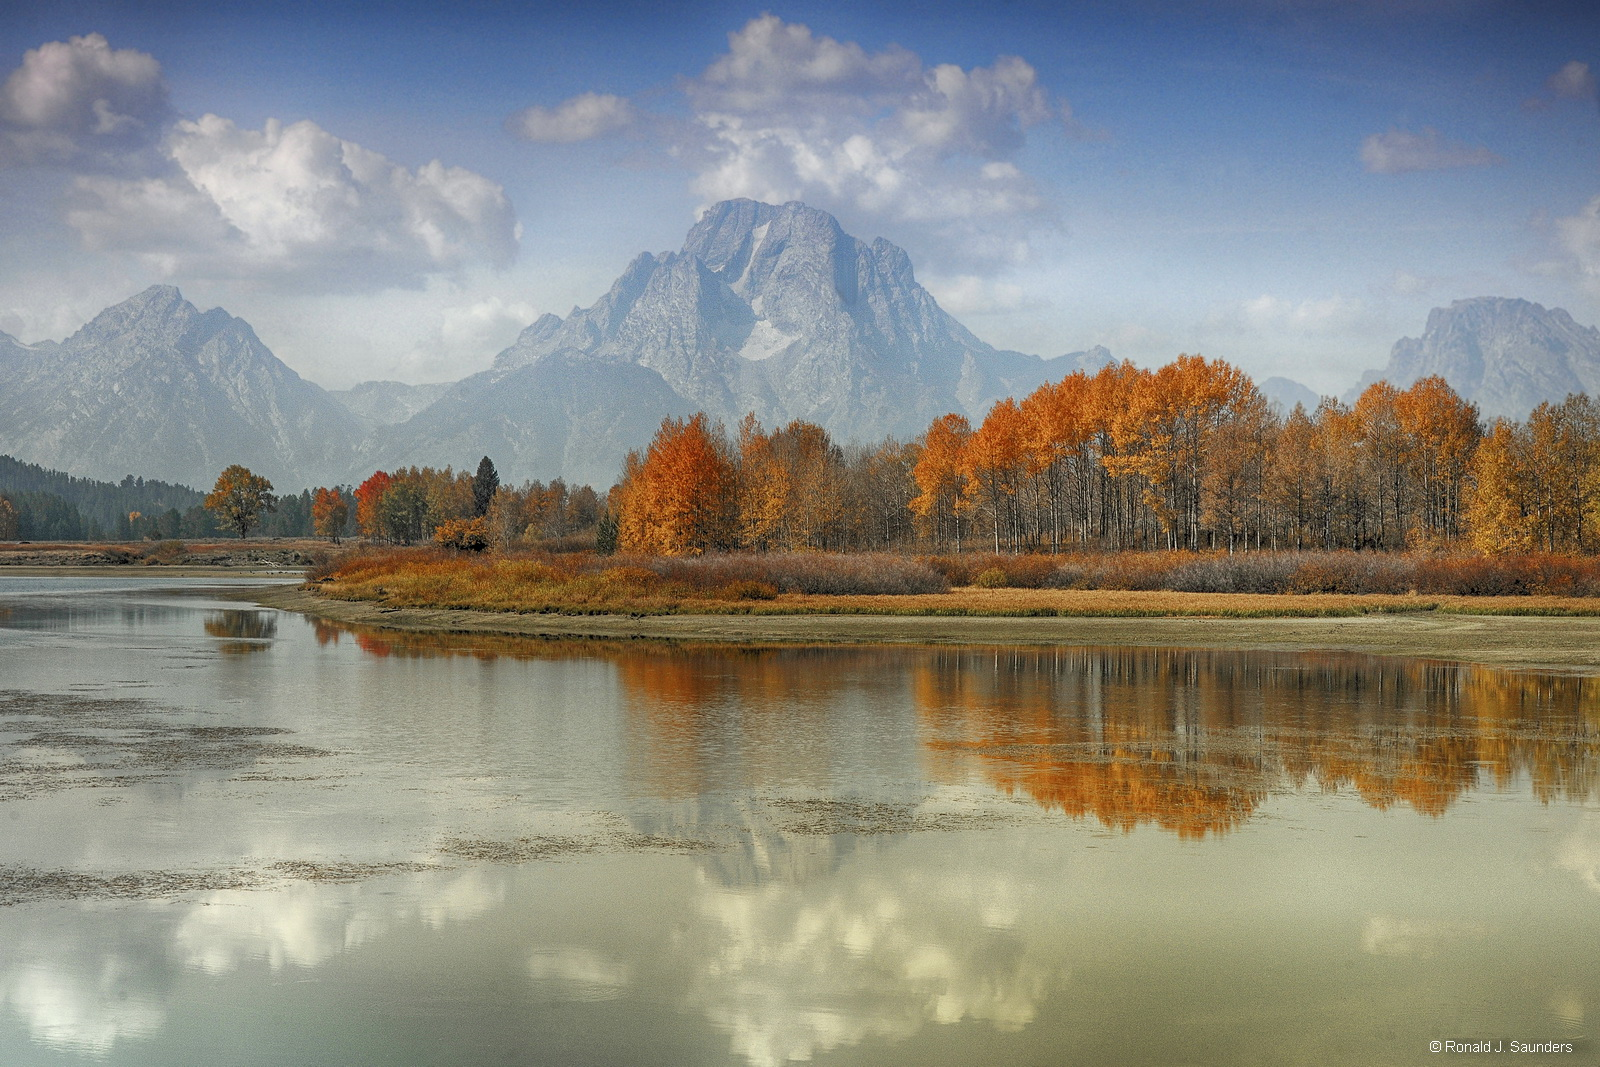 snake river, grand teton, water, fall, color, mountains, Mt Moran, autumn, ronals, saunders, ronald j. saunders, aspen, , photo